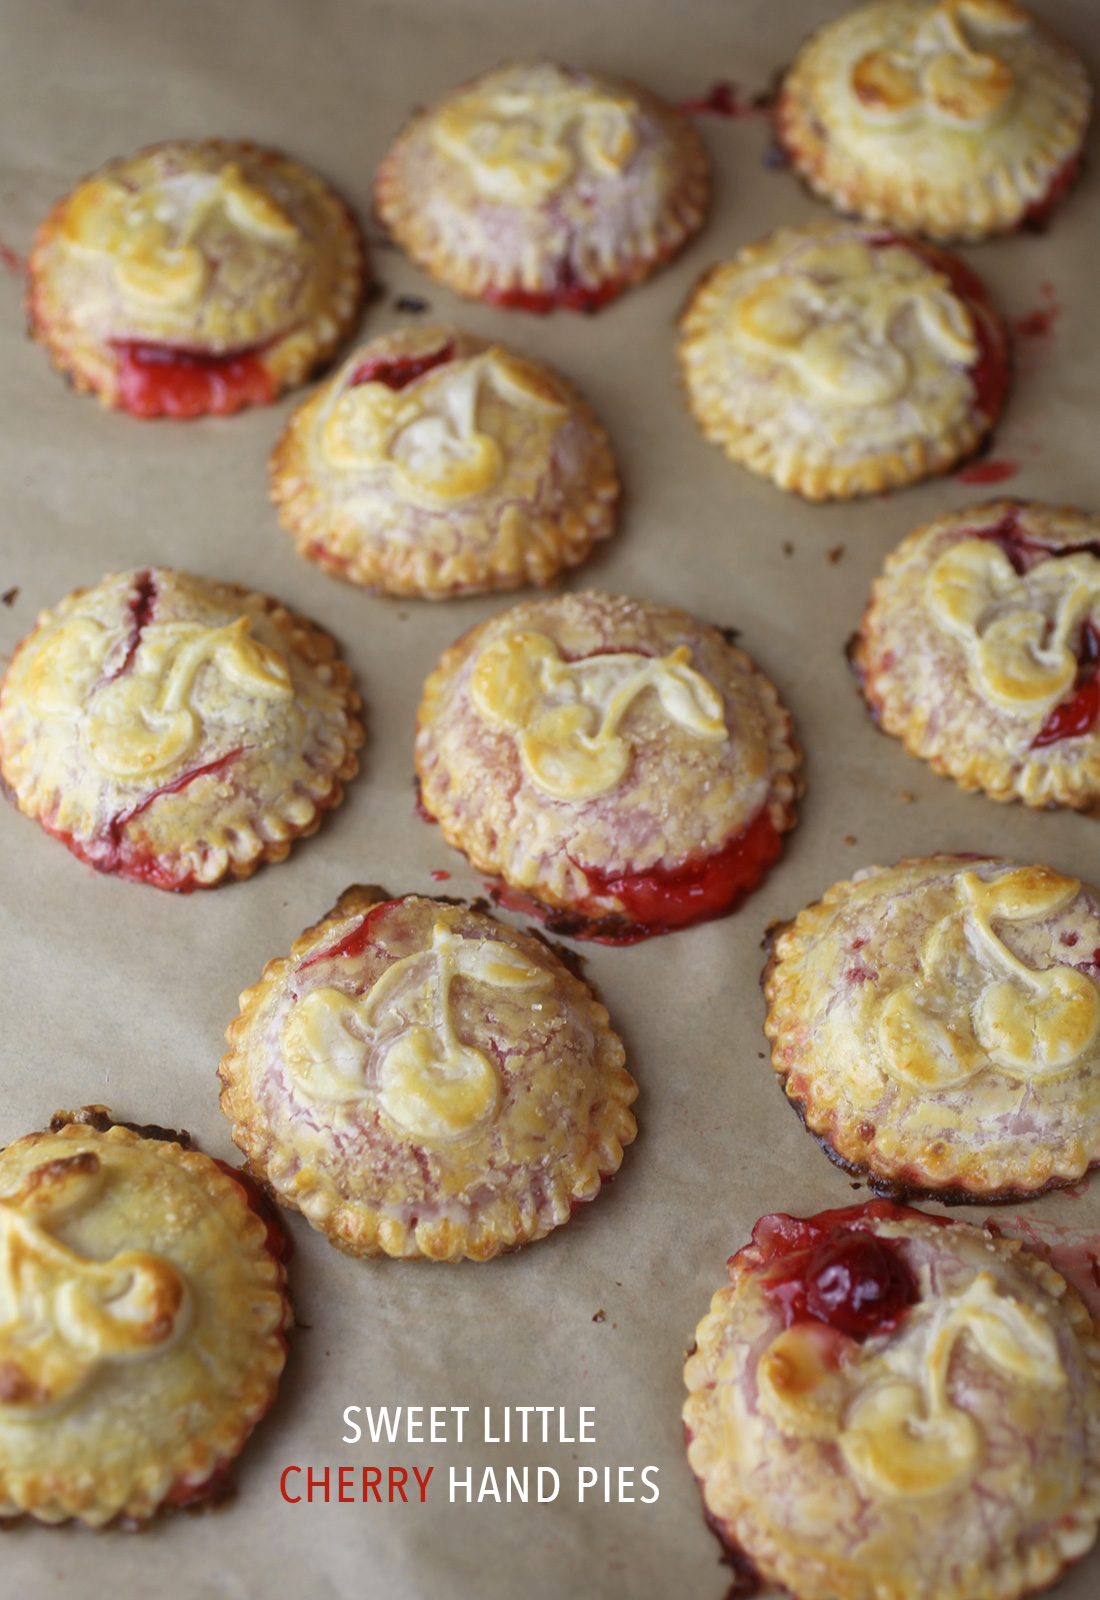 Sweet Little Cherry Hand Pies